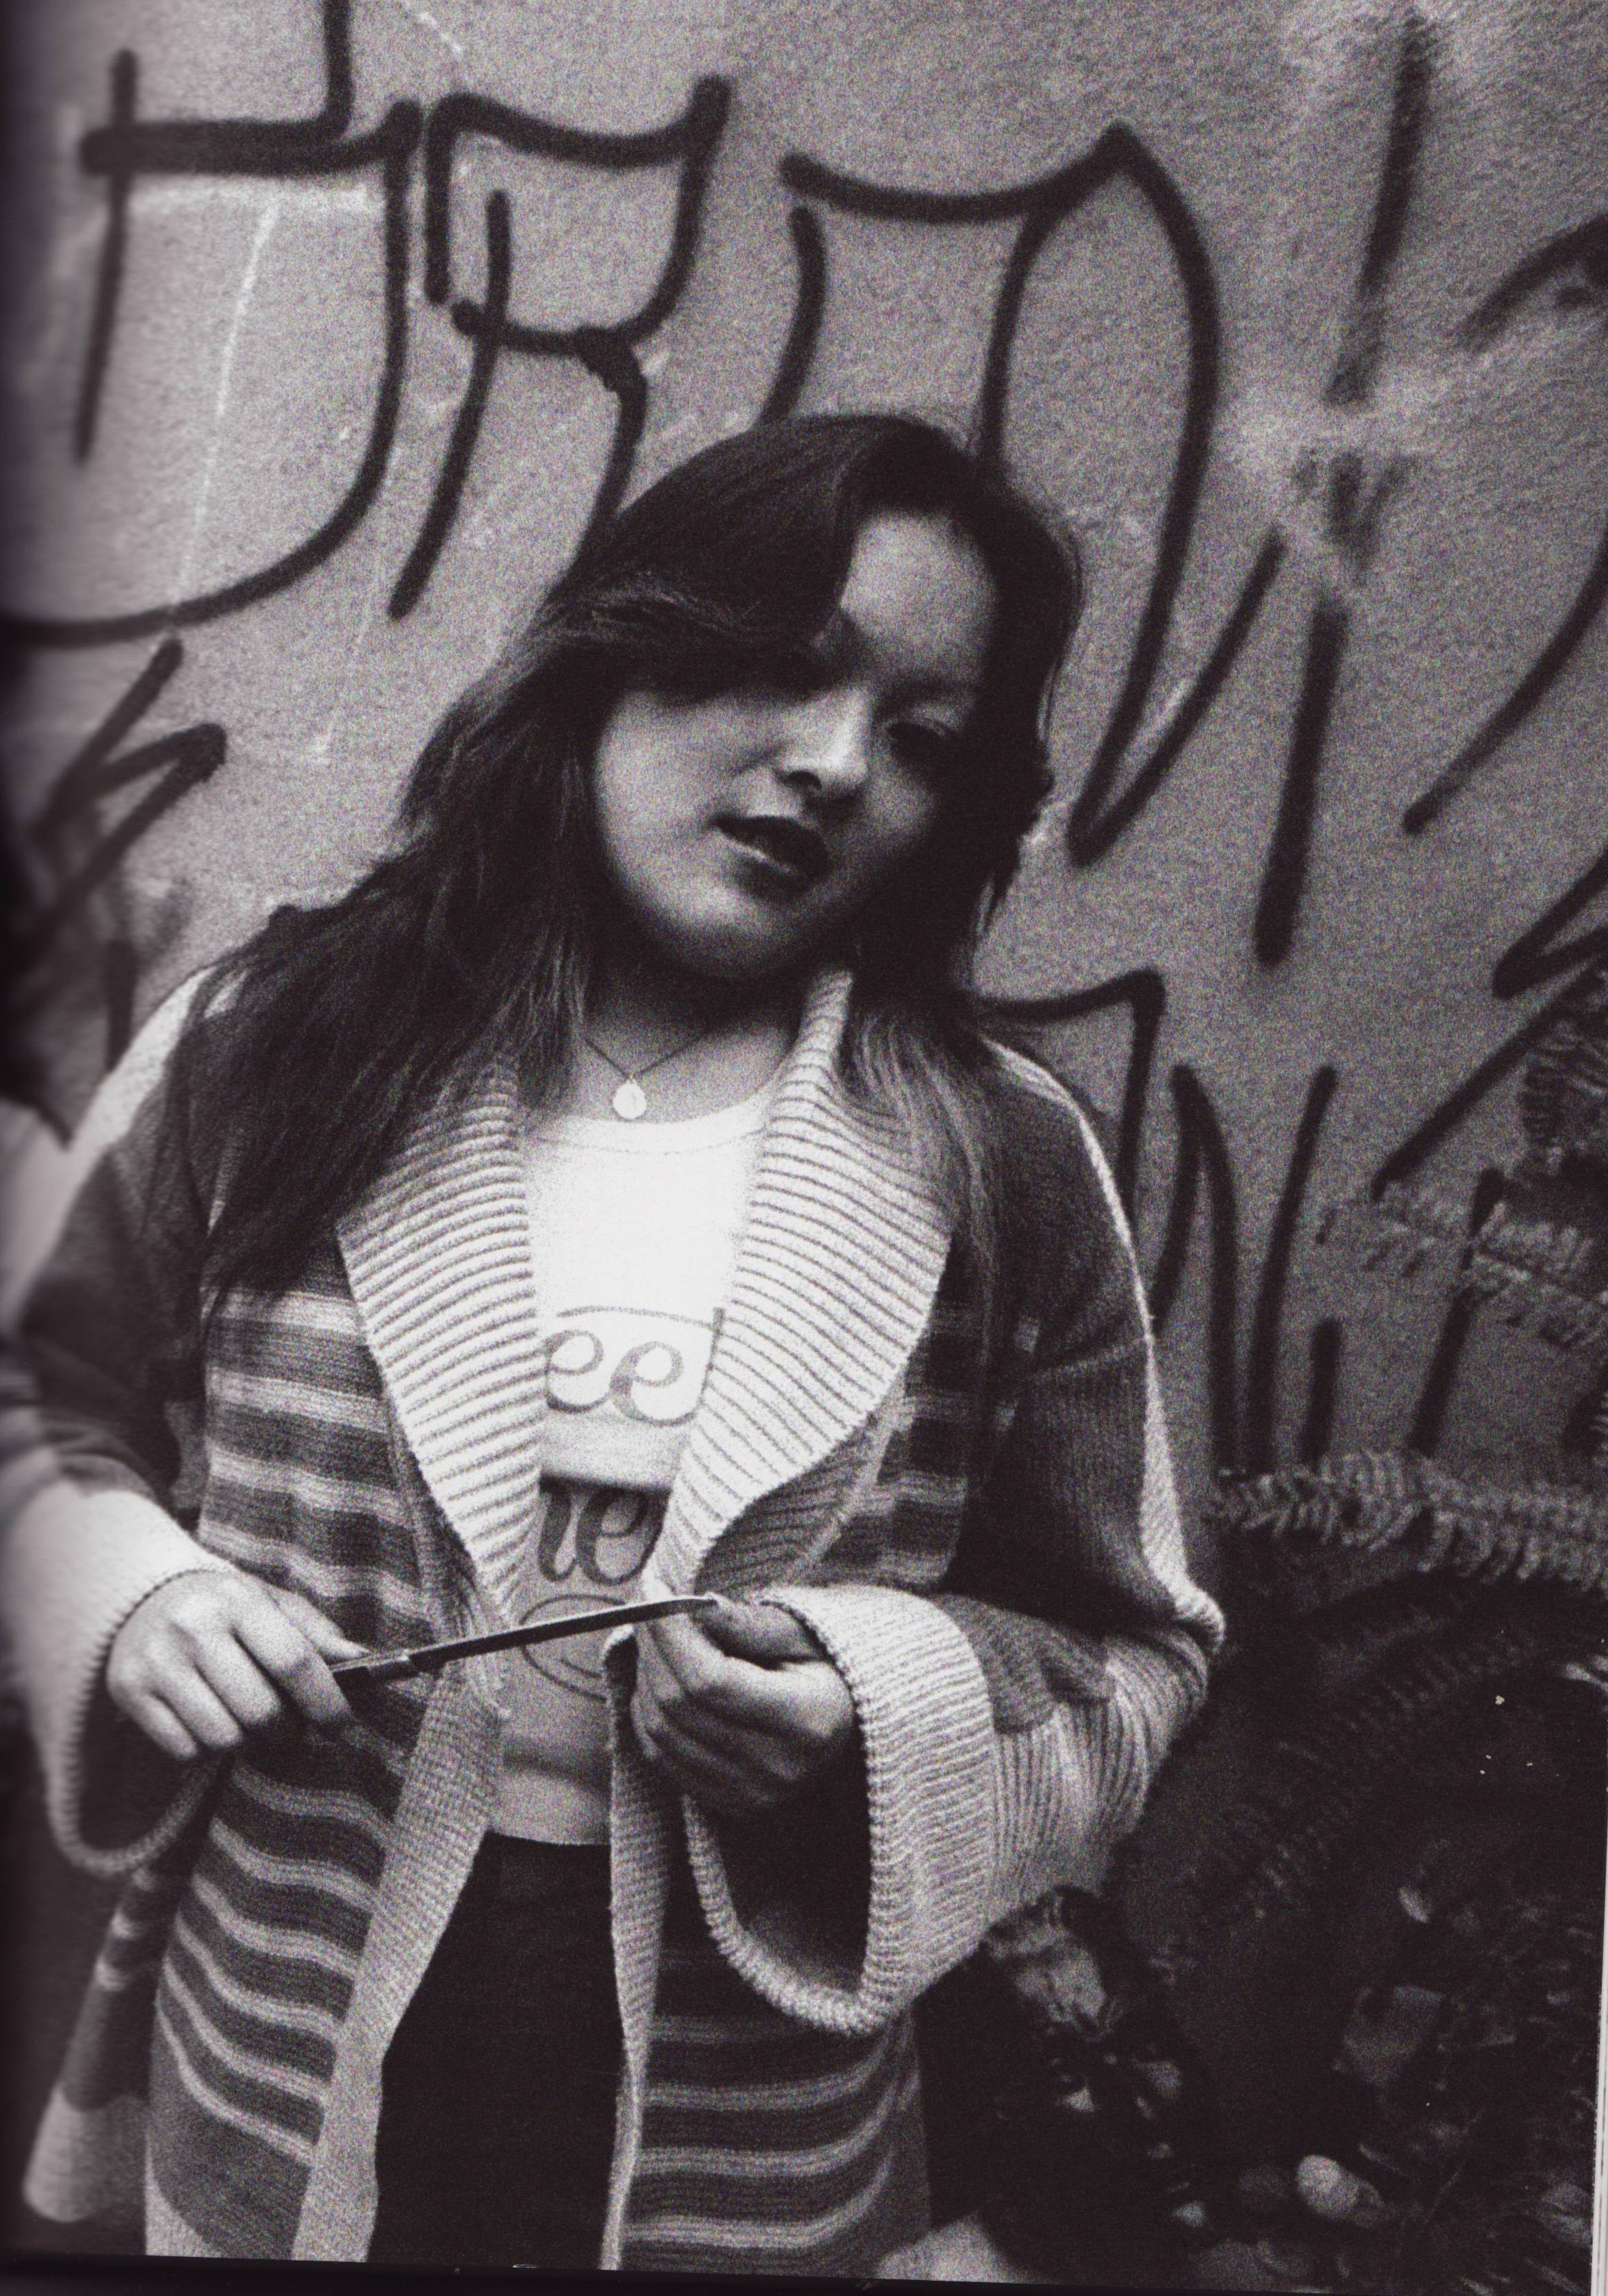 Chola Girls Naked Awesome portraits of 70's & 80's cholas culture -